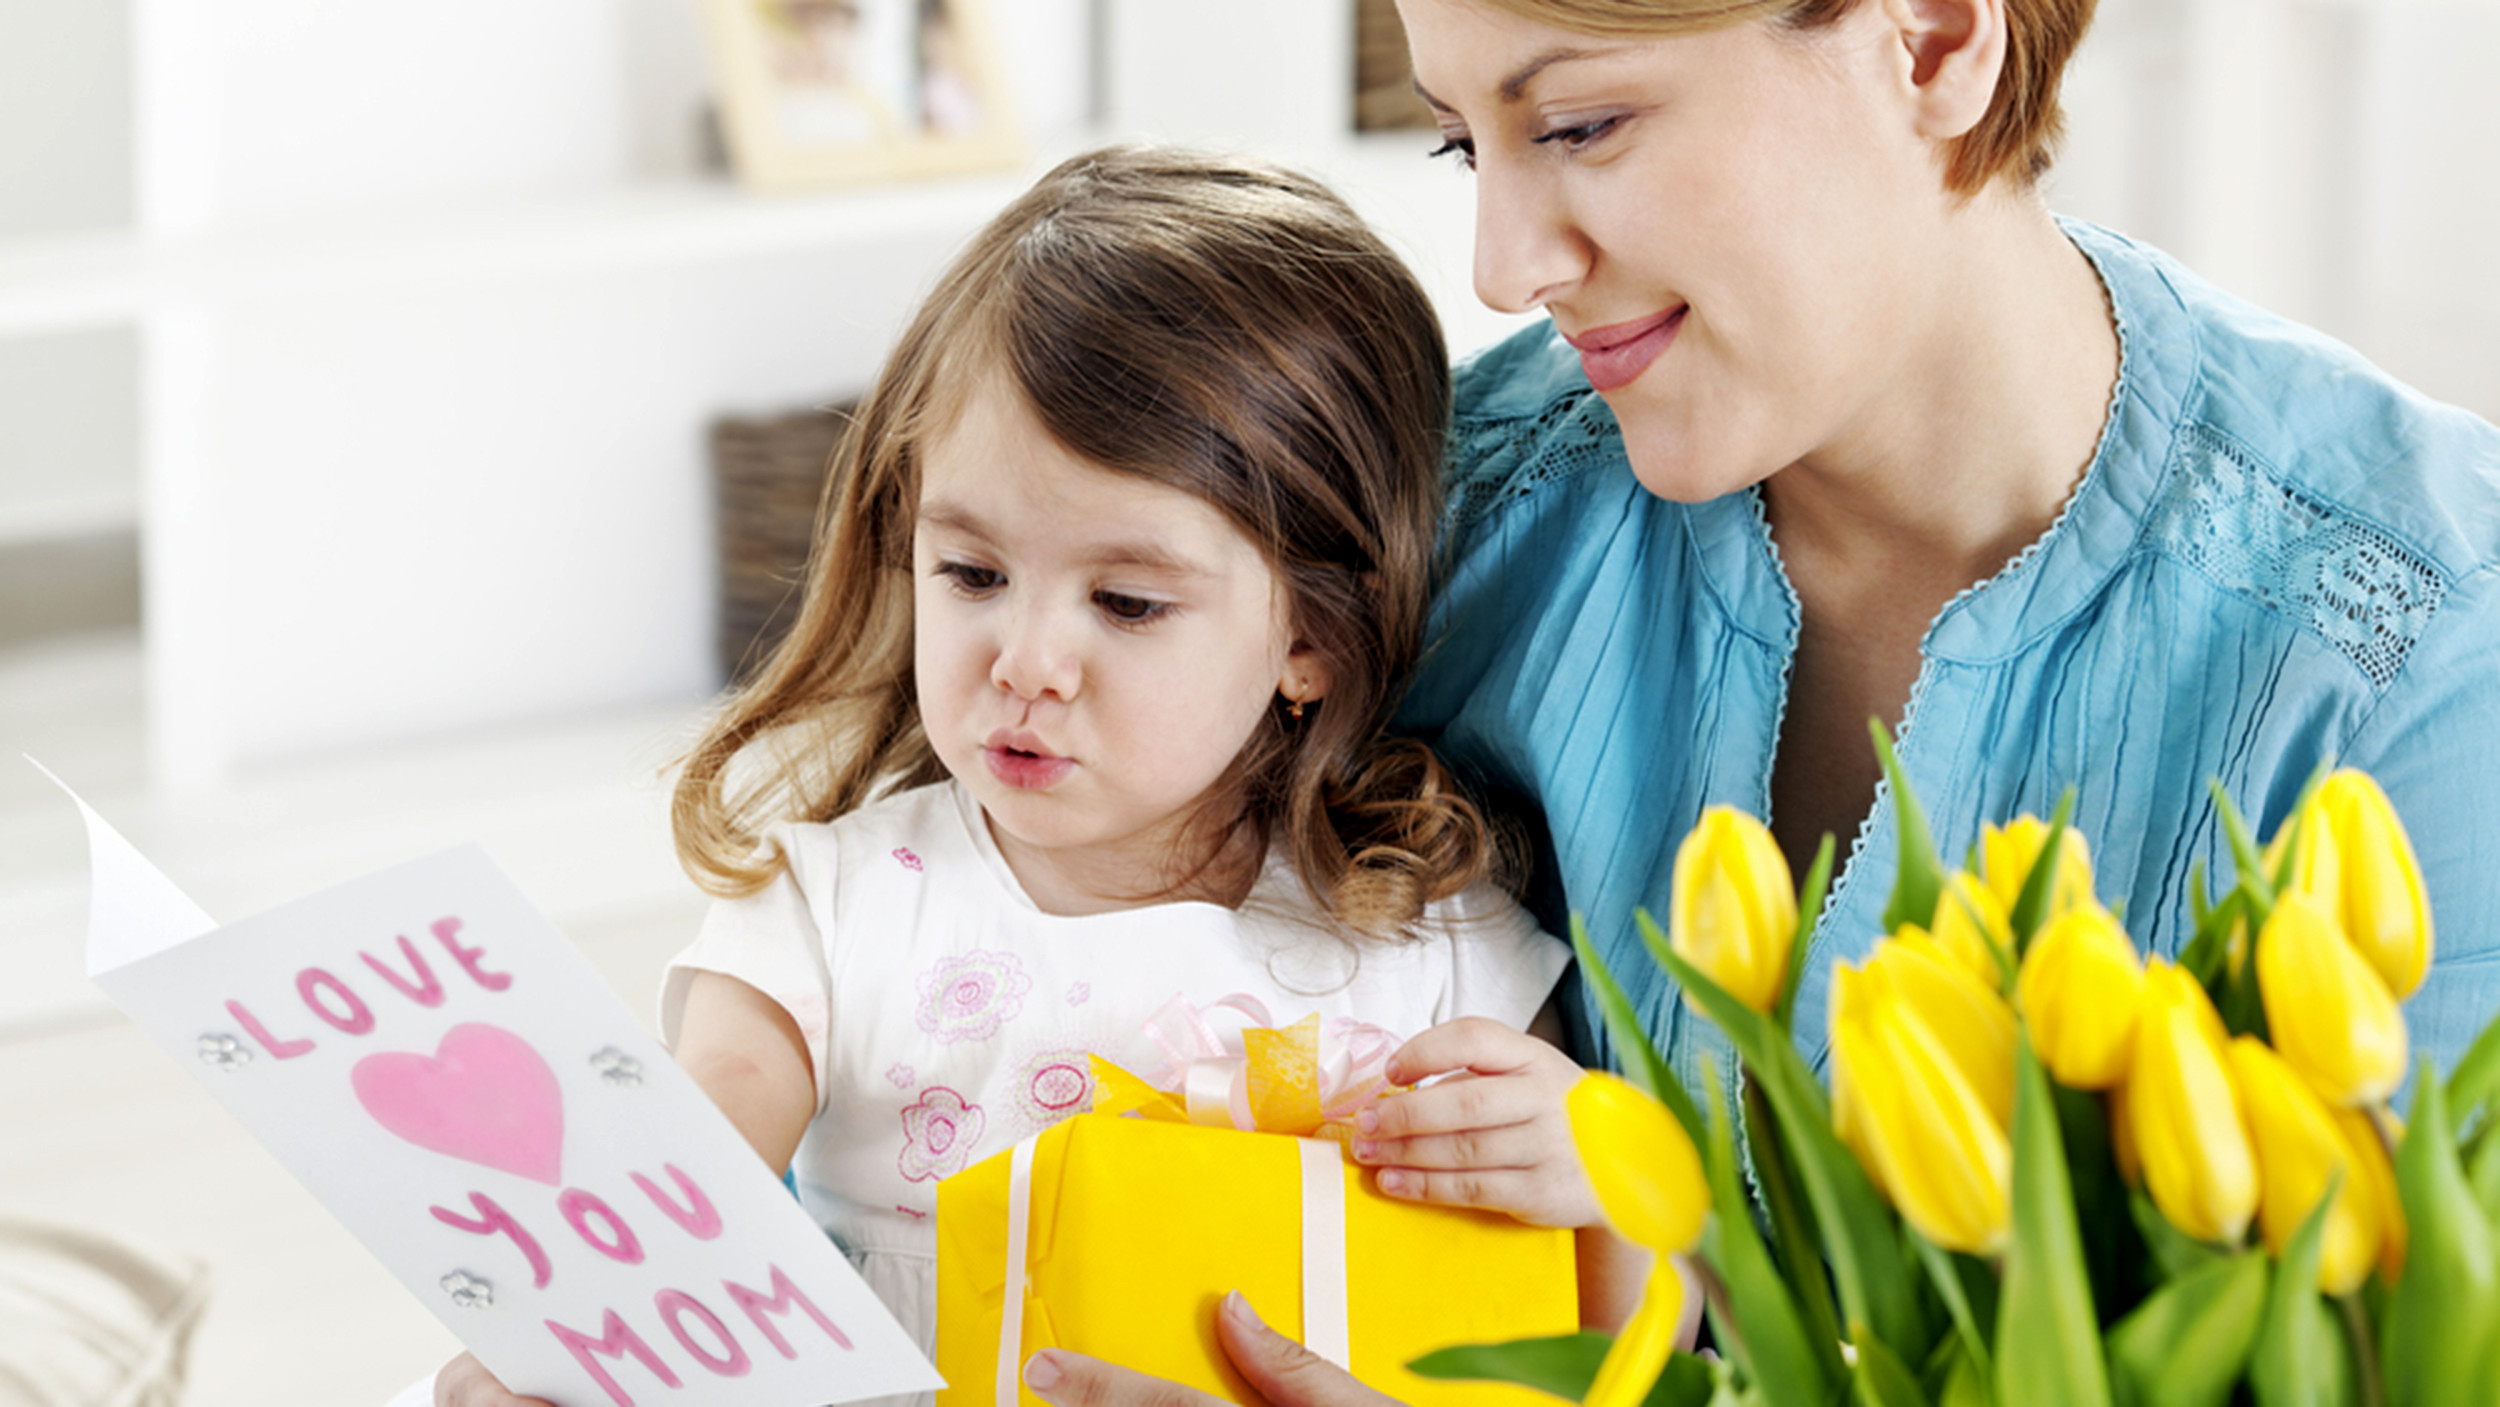 Today Show Mother's Day Gifts Unique today Show Offers Best Mother's Day Ever for Special Mom